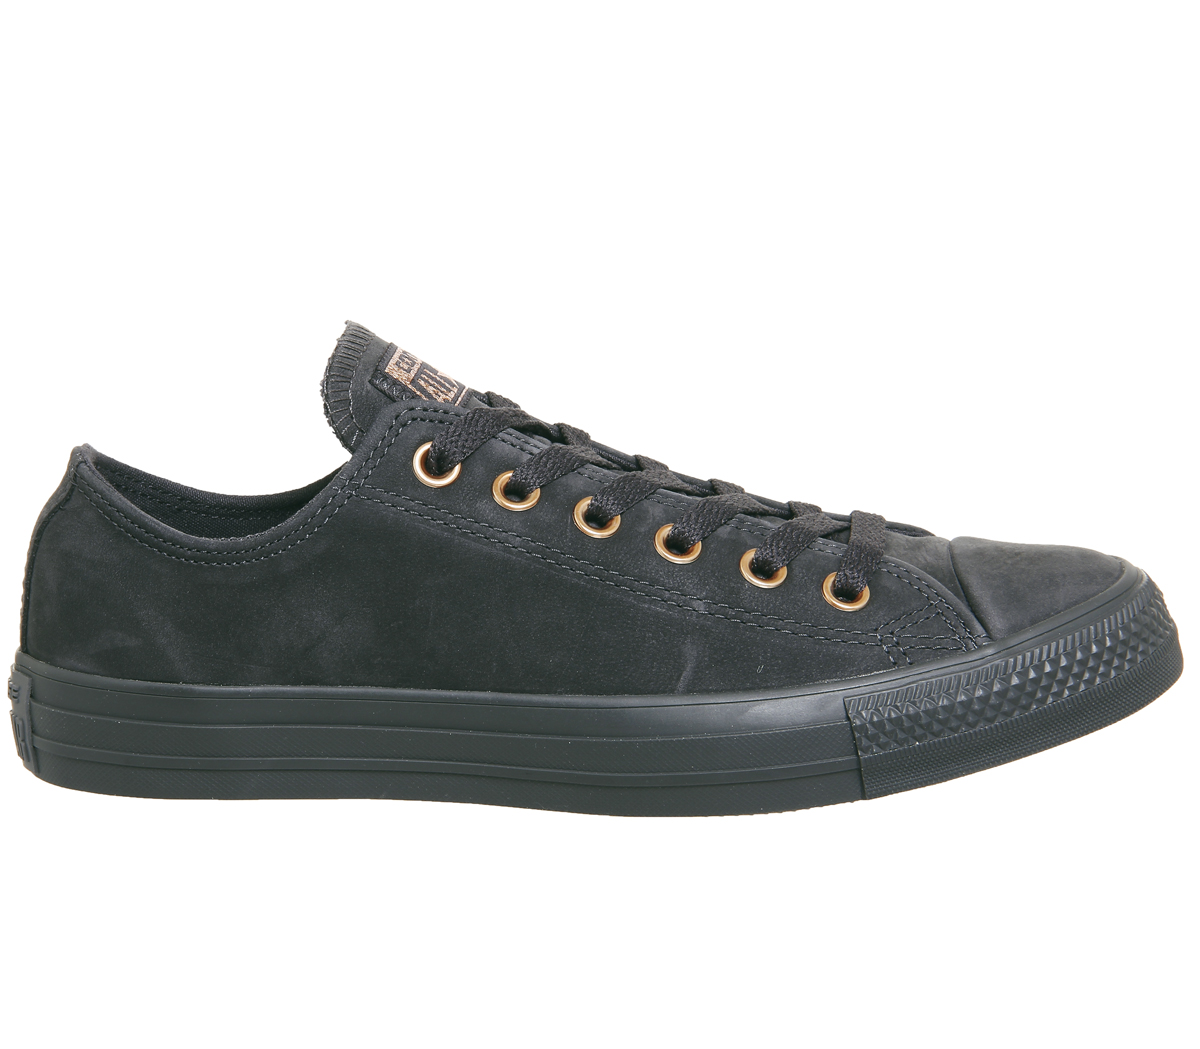 5a6c165292e079 Sentinel Womens Converse All Star Low Leather Almost Black Rose Gold  Trainers Shoes